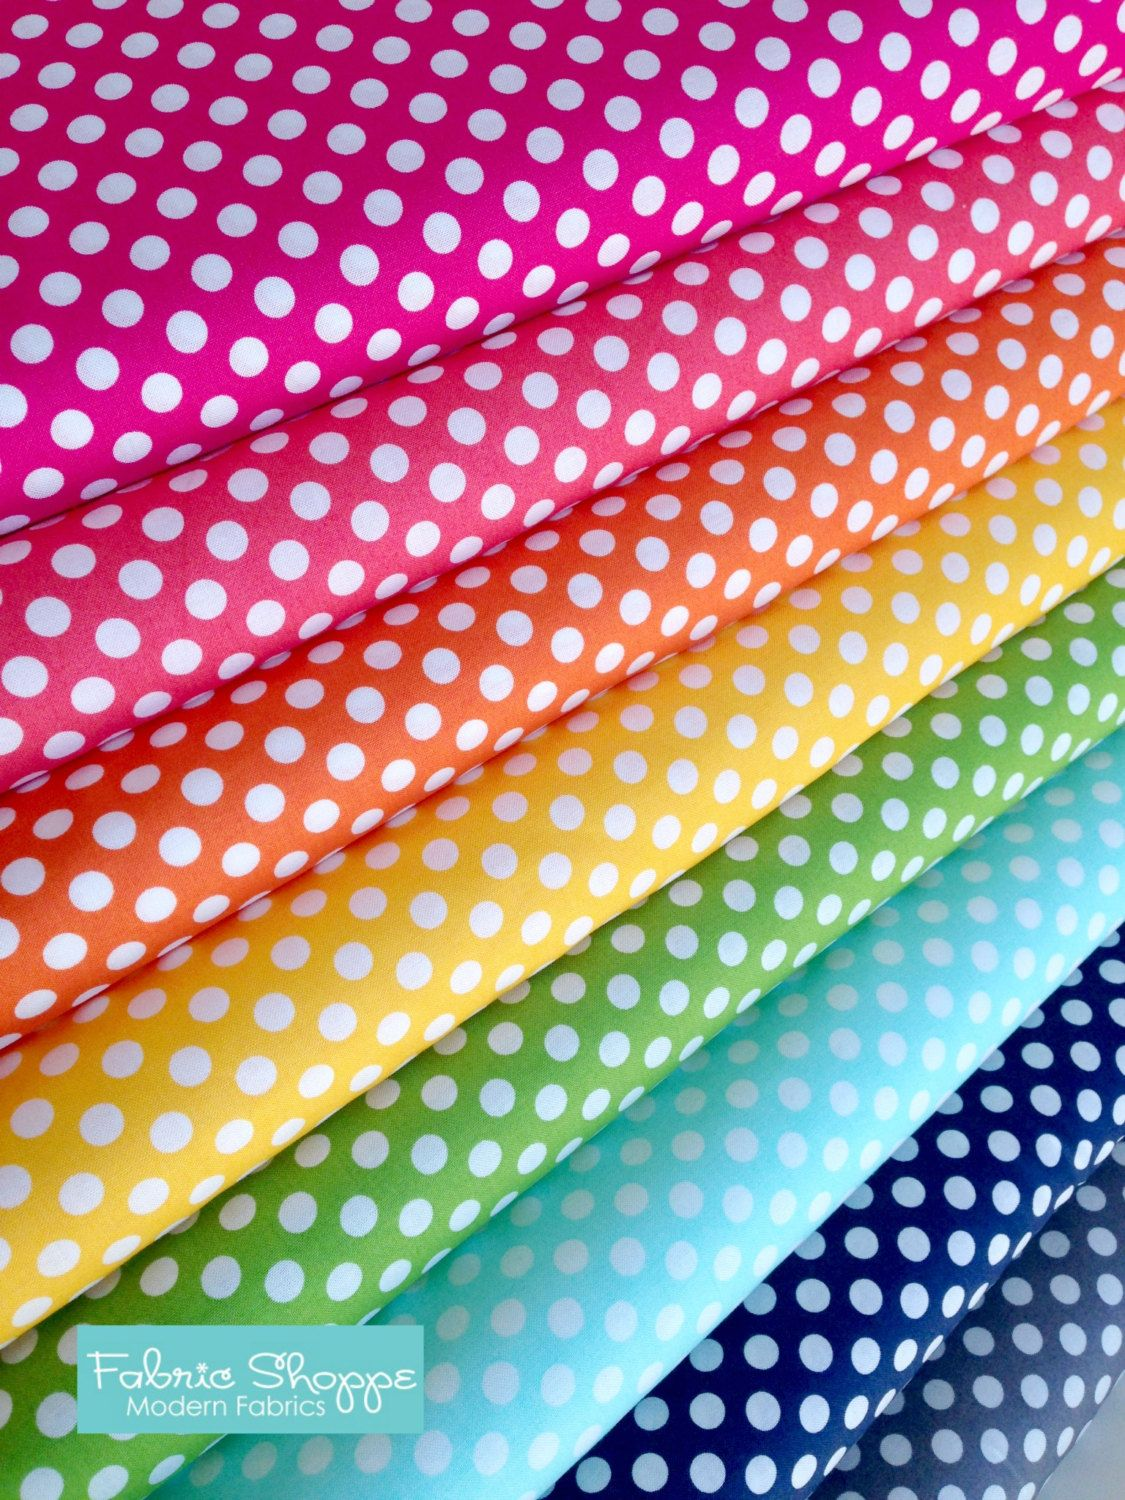 Best Seller, Rainbow Polka Dot Fabric, Cotton Fabric by ...